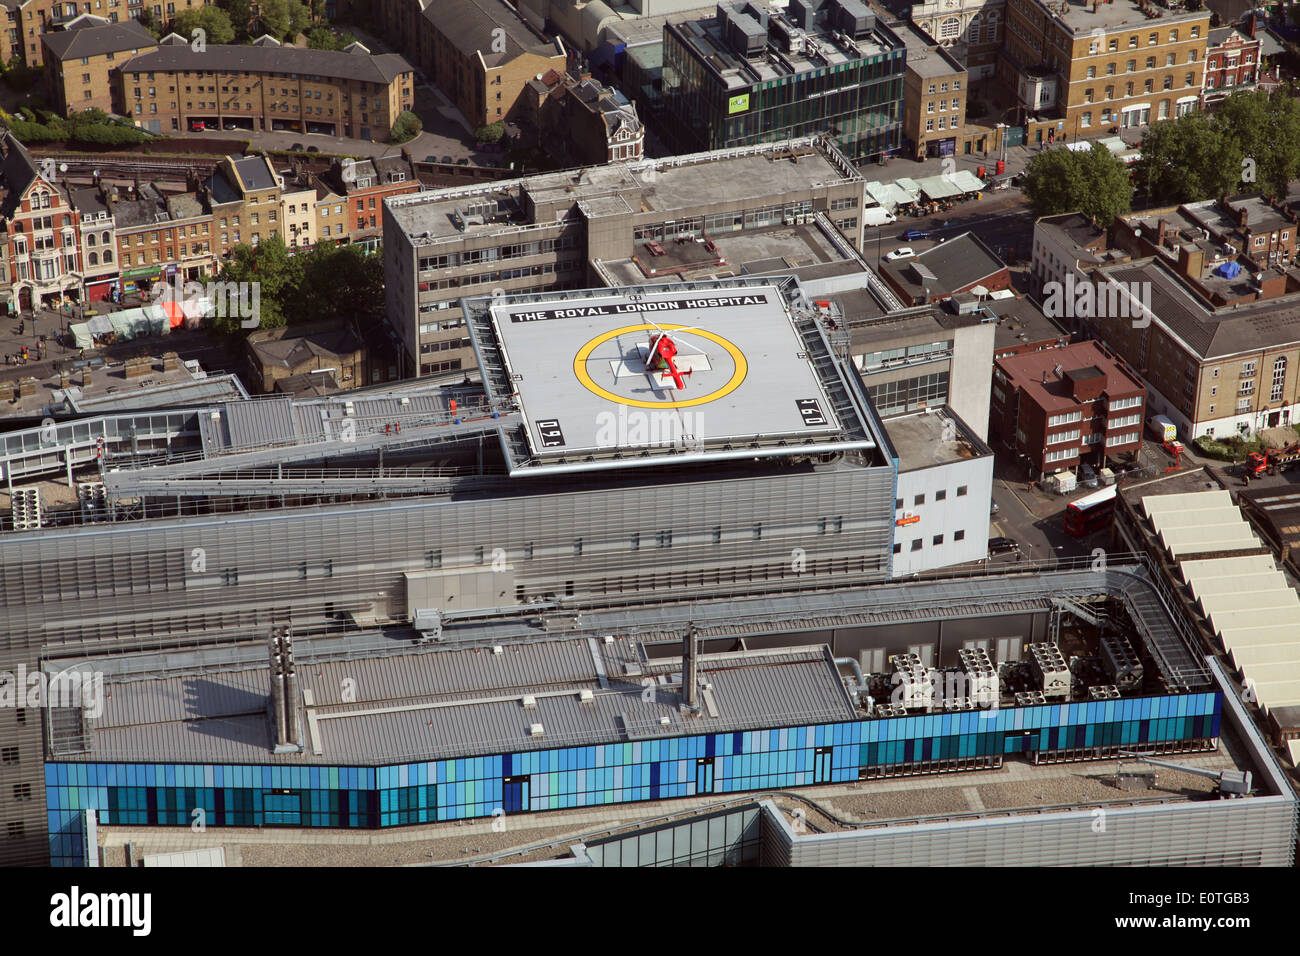 The emergency heli-pad, helicopter landing pad, on the roof of The Royal London Hospital, London, UK - Stock Image